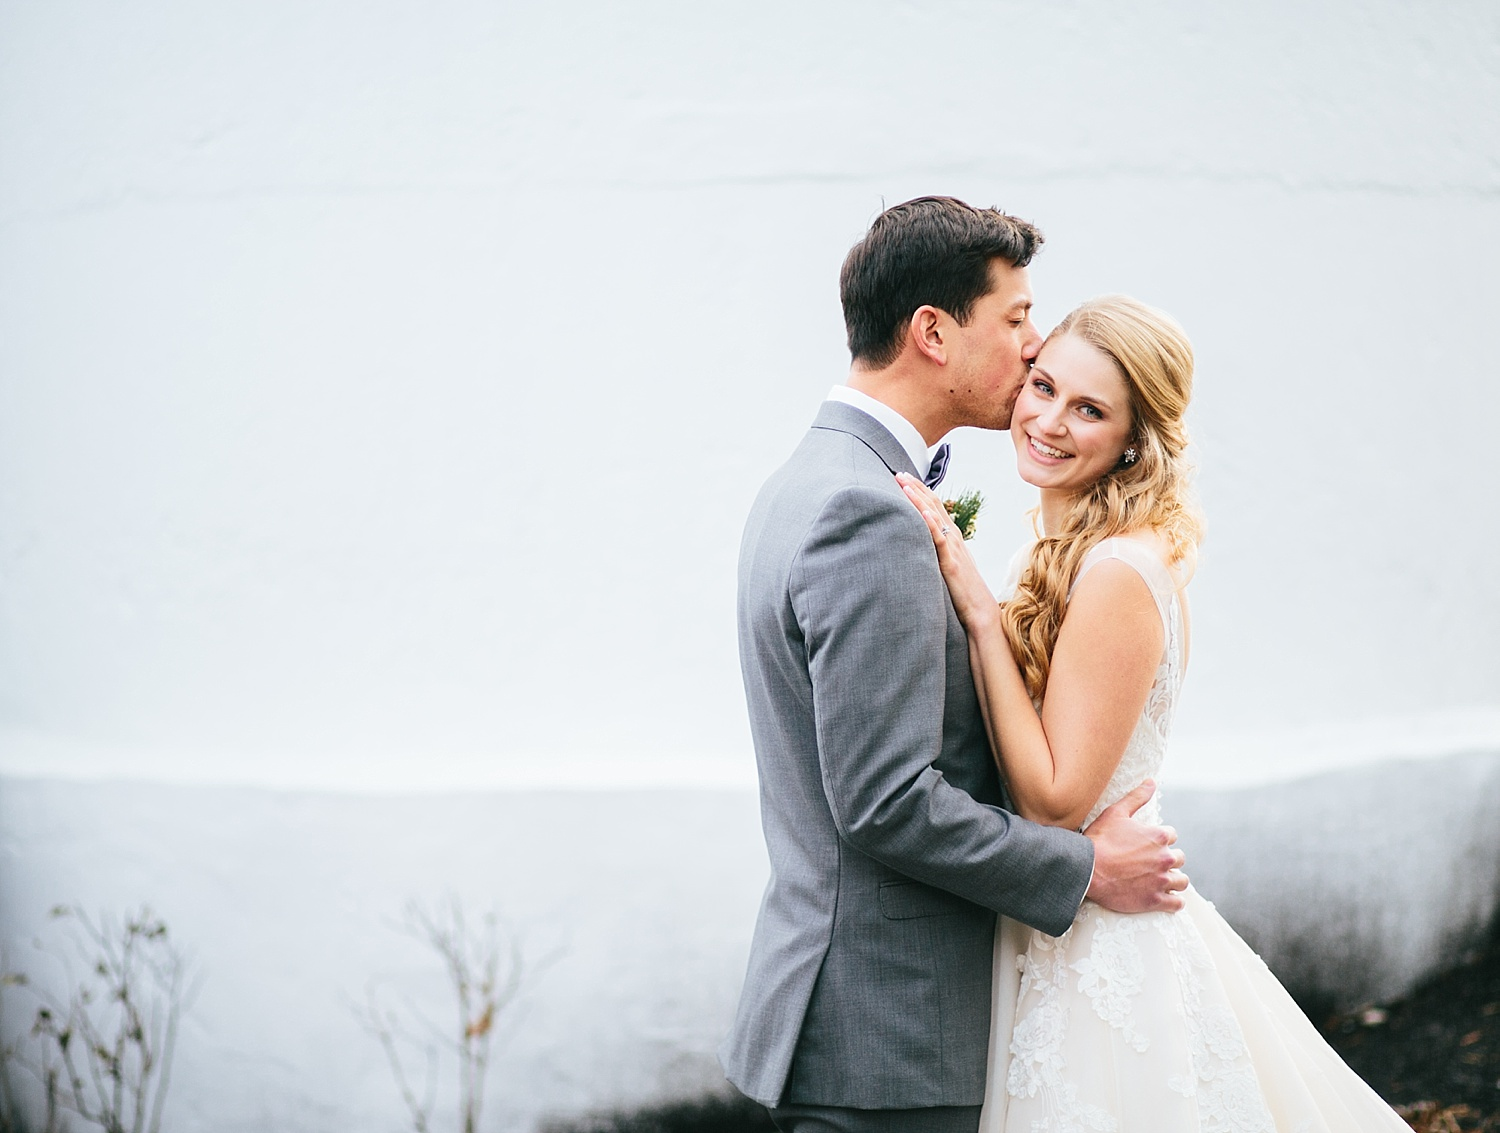 jessdavid_barnonbridge_phoenixville_winter_wedding_image_057.jpg